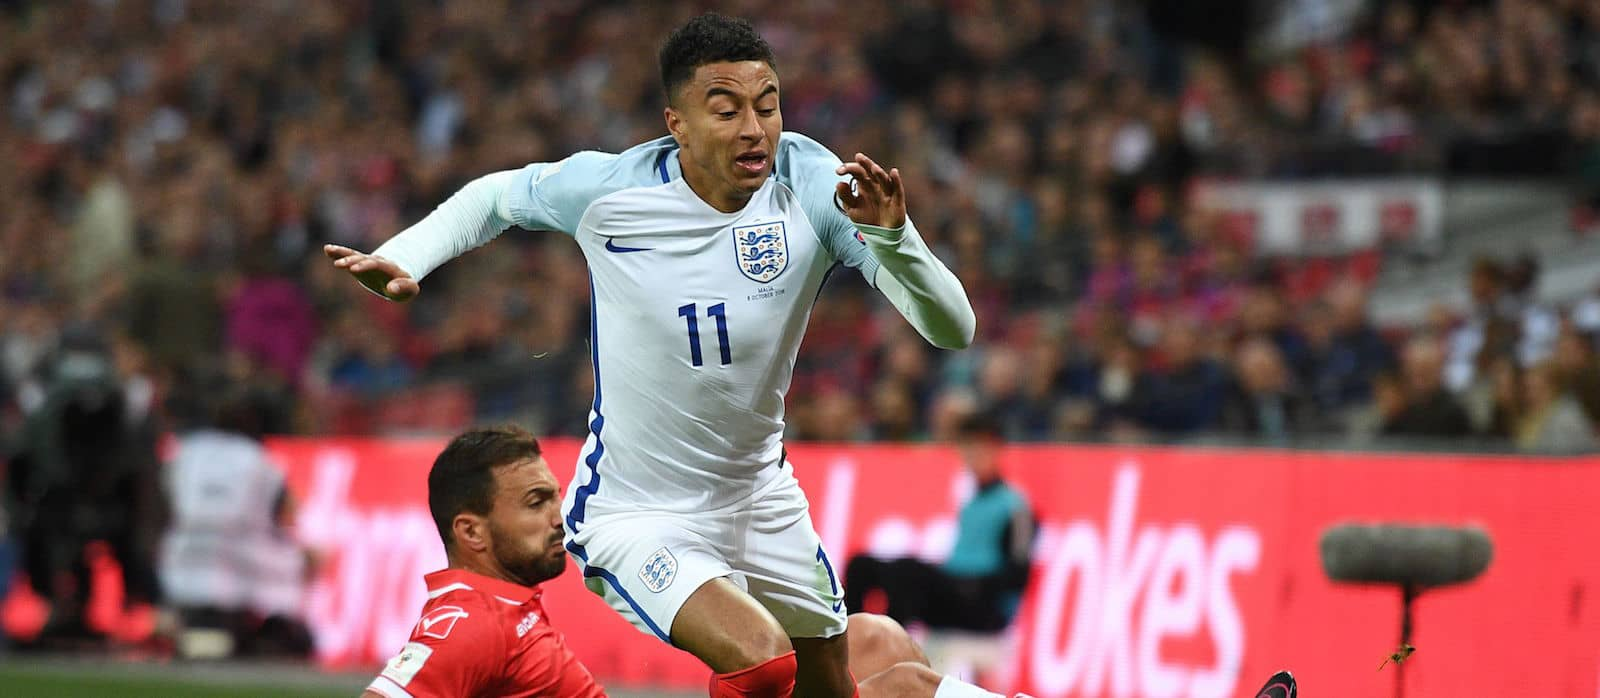 Manchester United fans react to Jesse Lingard's performance against Spain